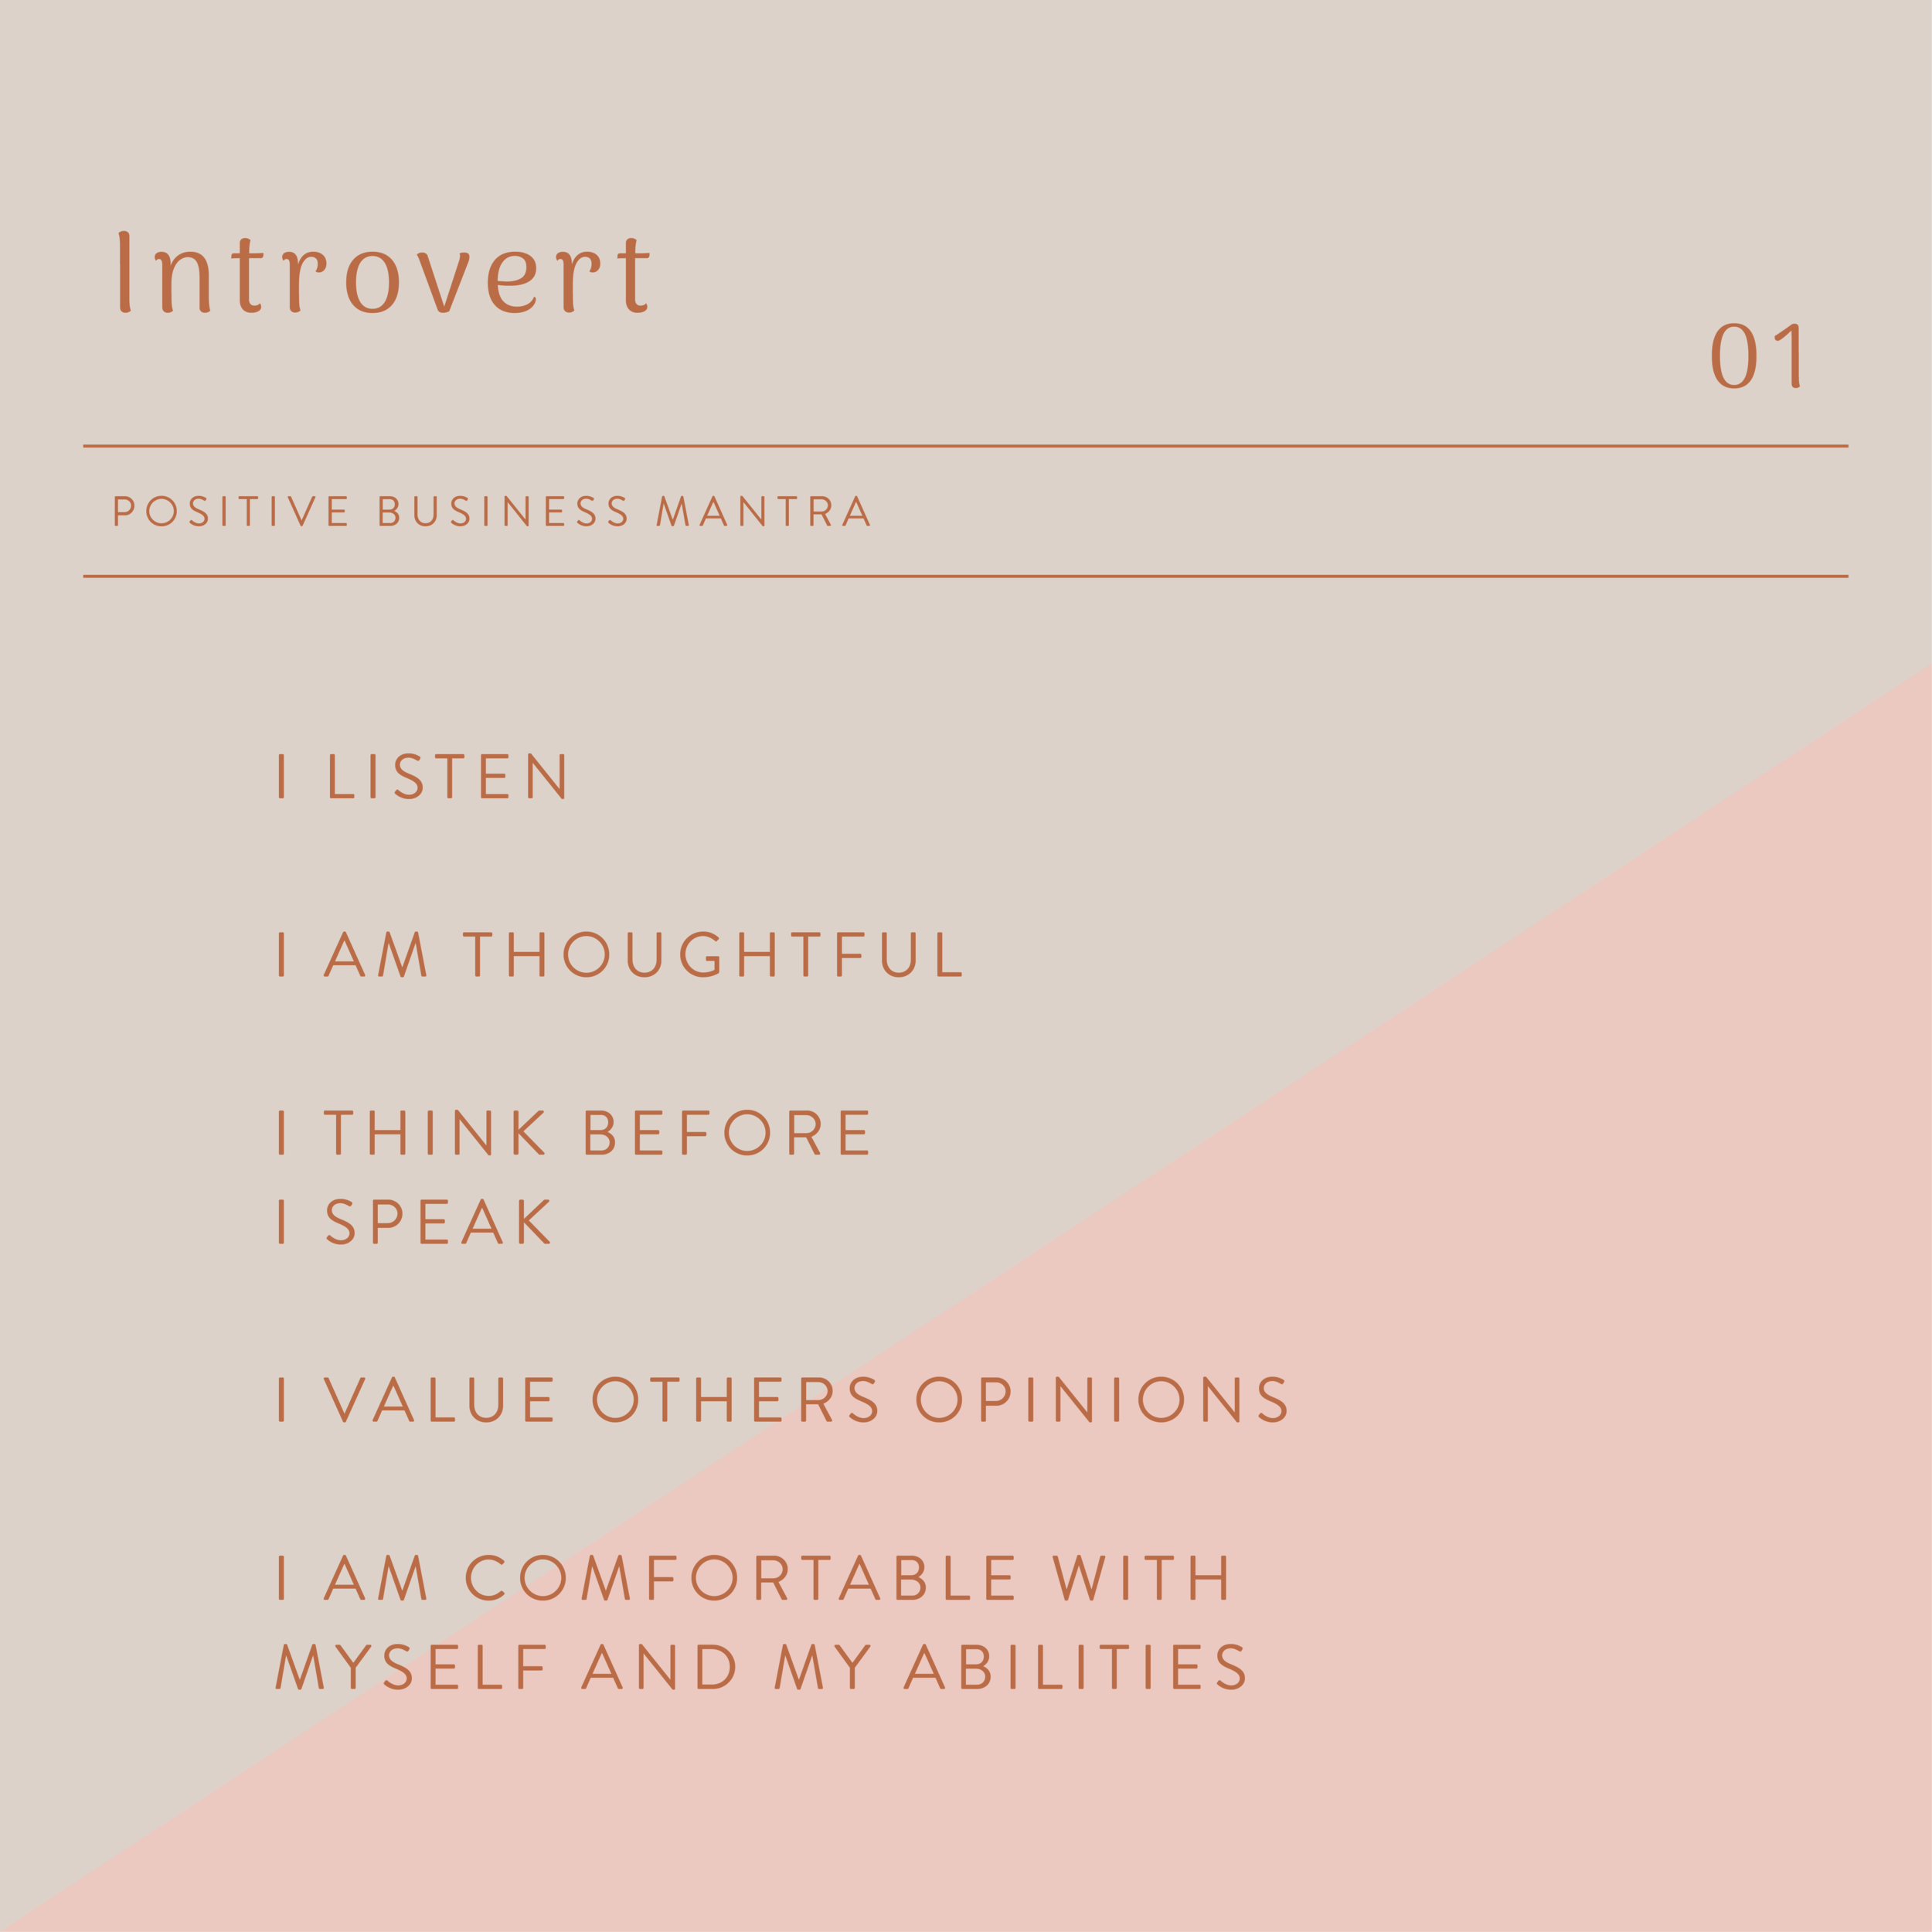 introvert2-01.png